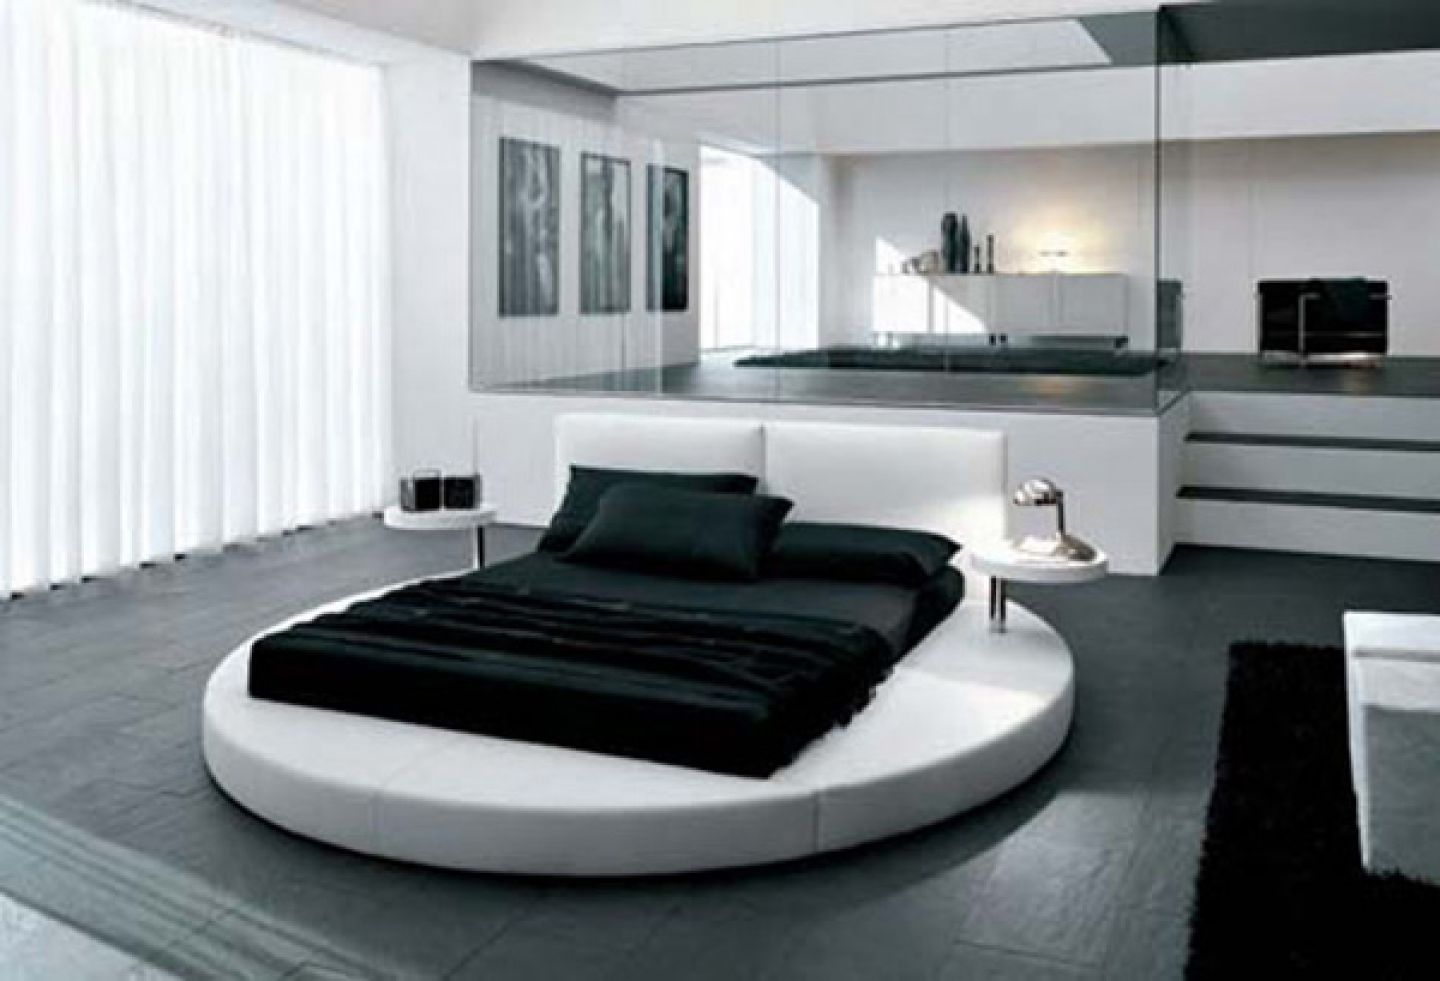 Modern Round Bed Completing Stylish Room using Bedroom Color Schemes with White Sheer Curtain